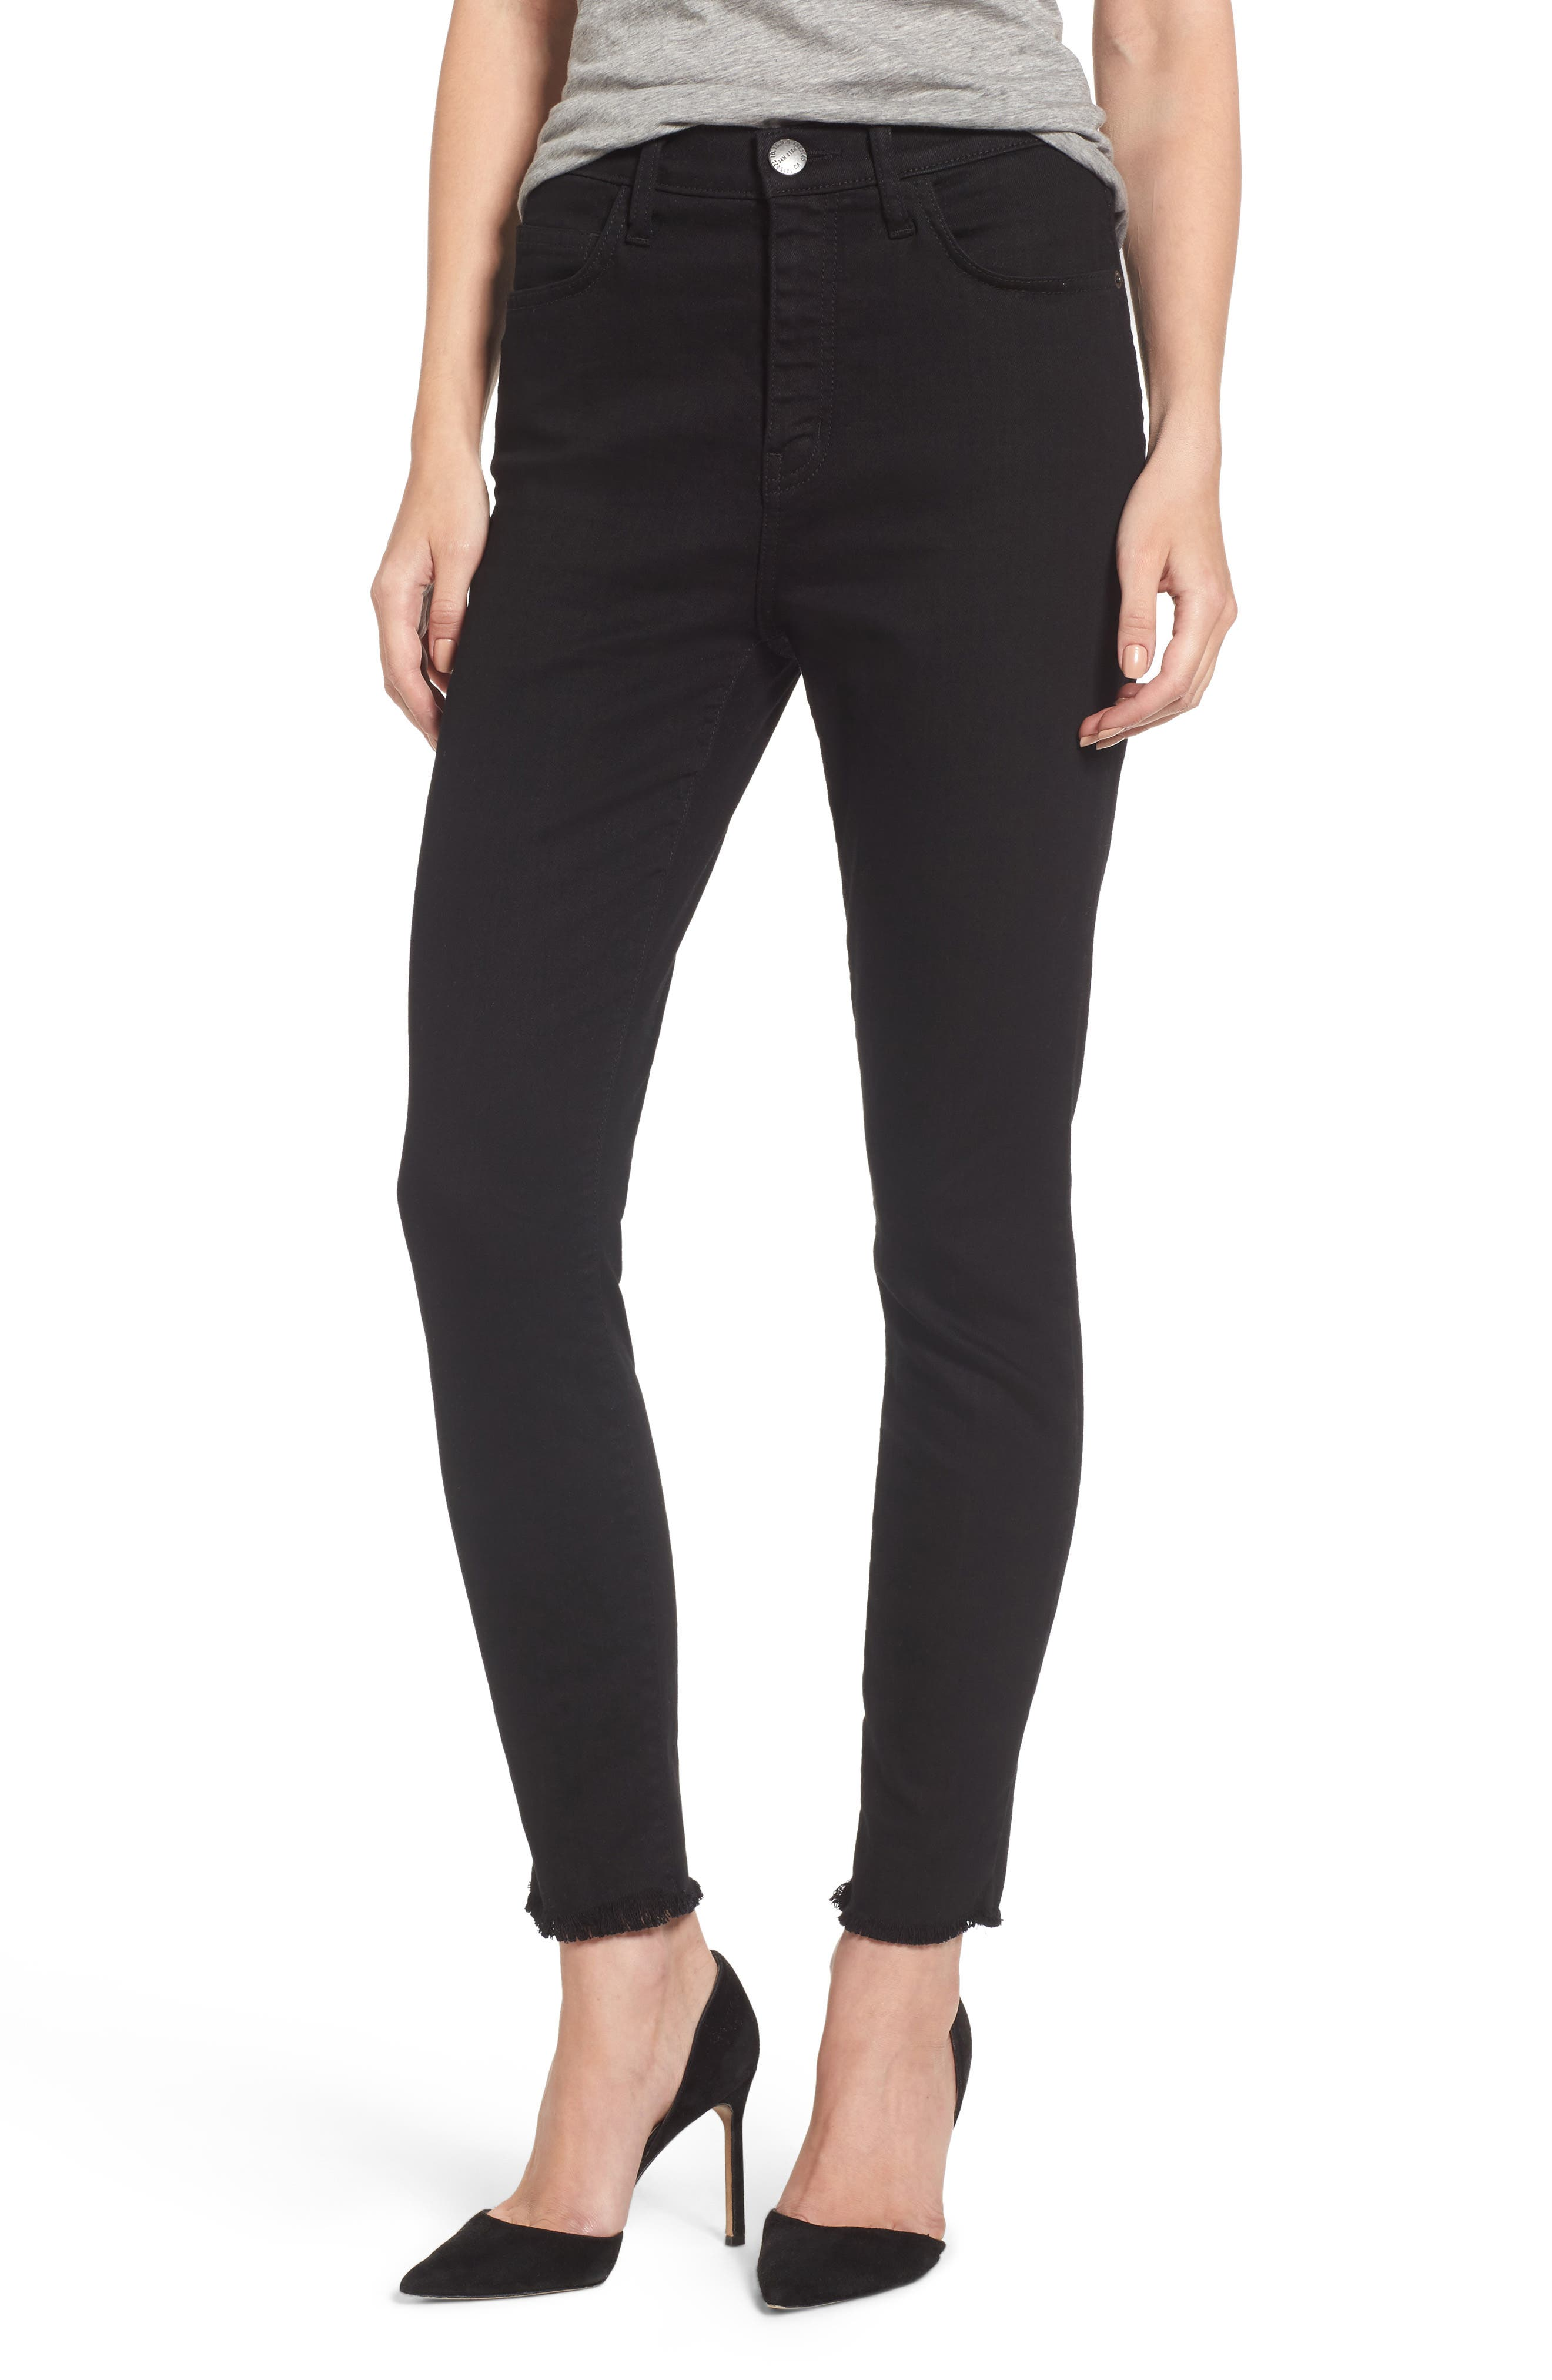 Alternate Image 1 Selected - Current/Elliott The Super High Waist Stiletto Ankle Skinny Jeans (Jet Black)